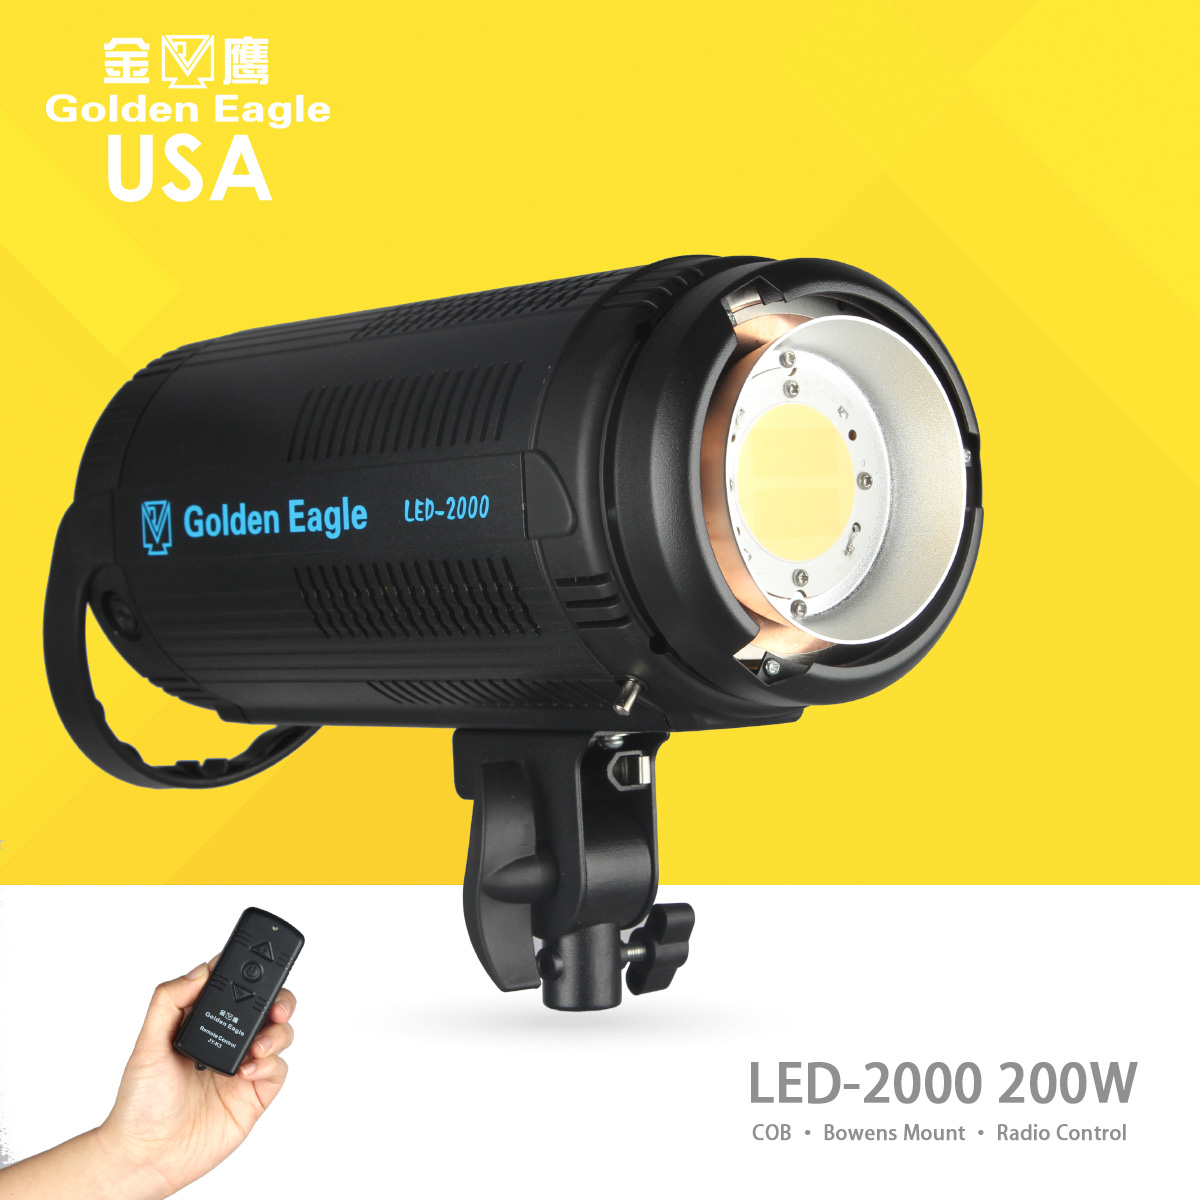 Golden Eagle LED-2000 200w COB